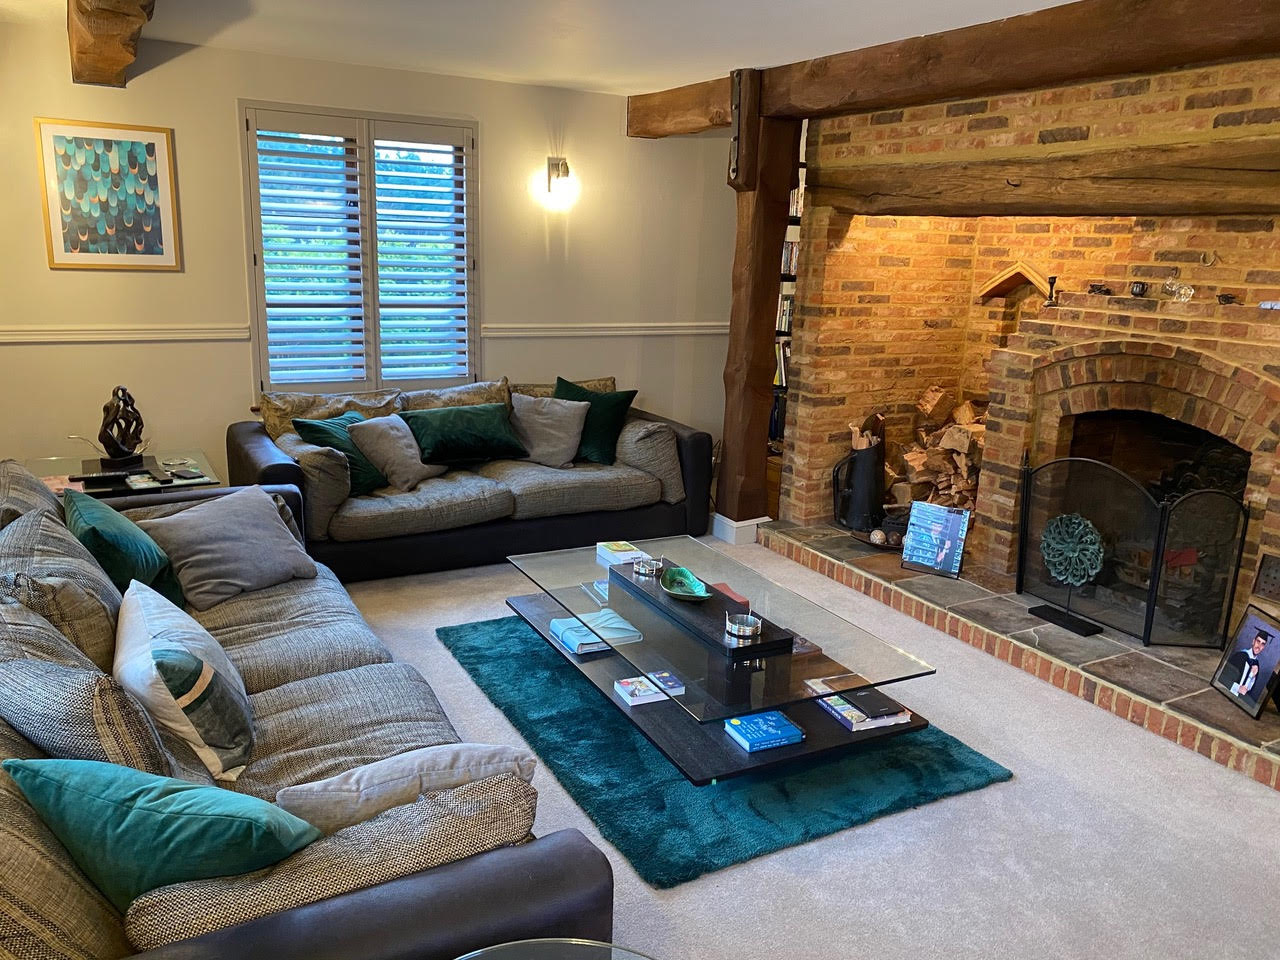 After room refresh by Juby Interior Design. Curtains and poles removed with bespoke shutters made and fitted. New accent colour to add some interest. New light fittings, rug, pictures and accessories to update the look of the room.